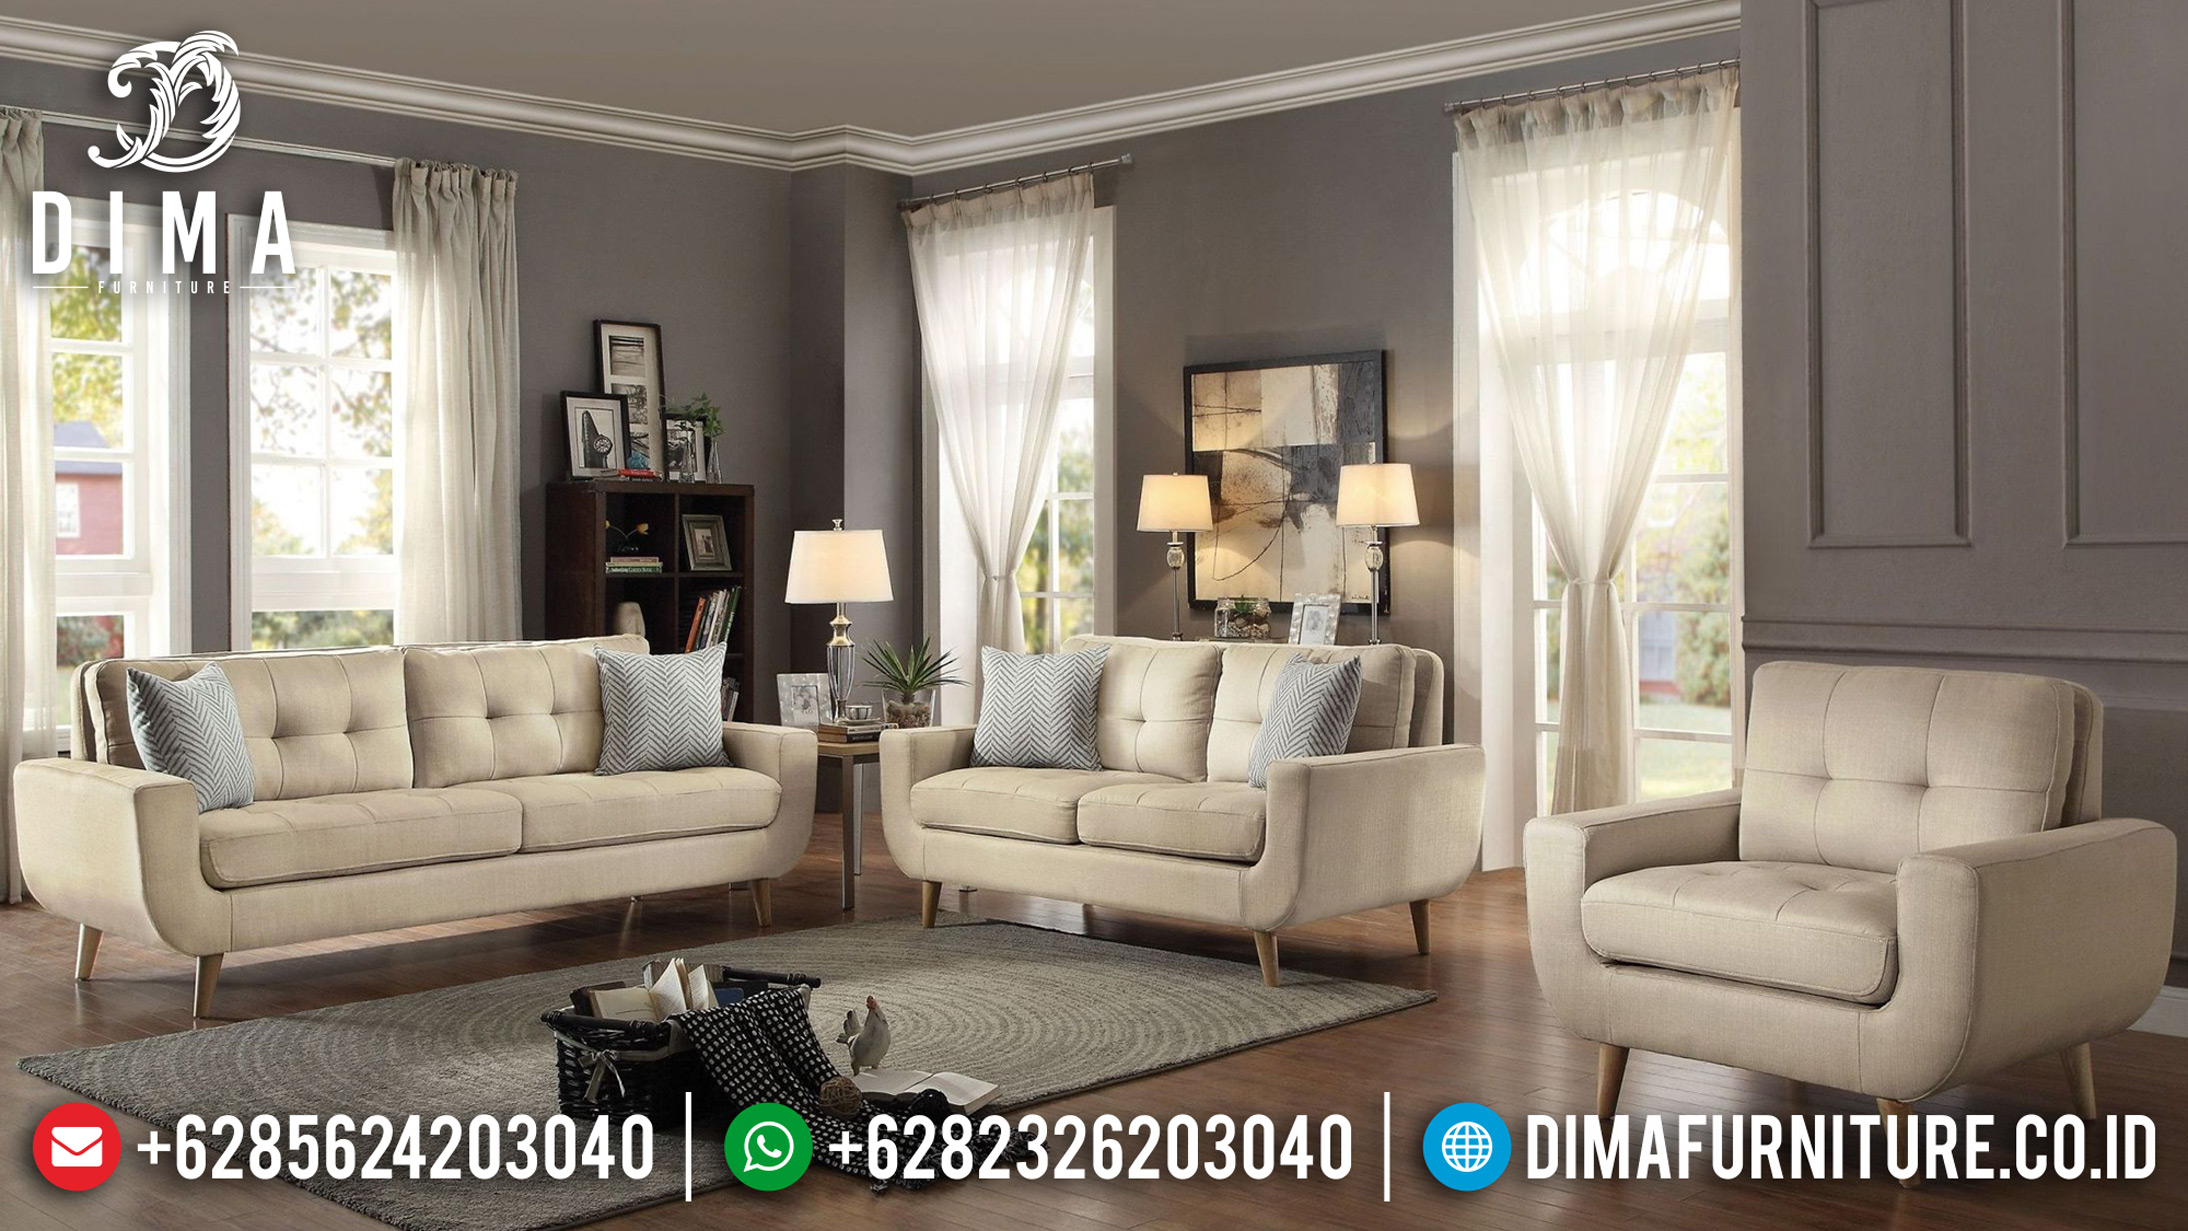 Set Sofa Tamu Minimalis Jepara Model Terbaru Amira Fabric MM-0404